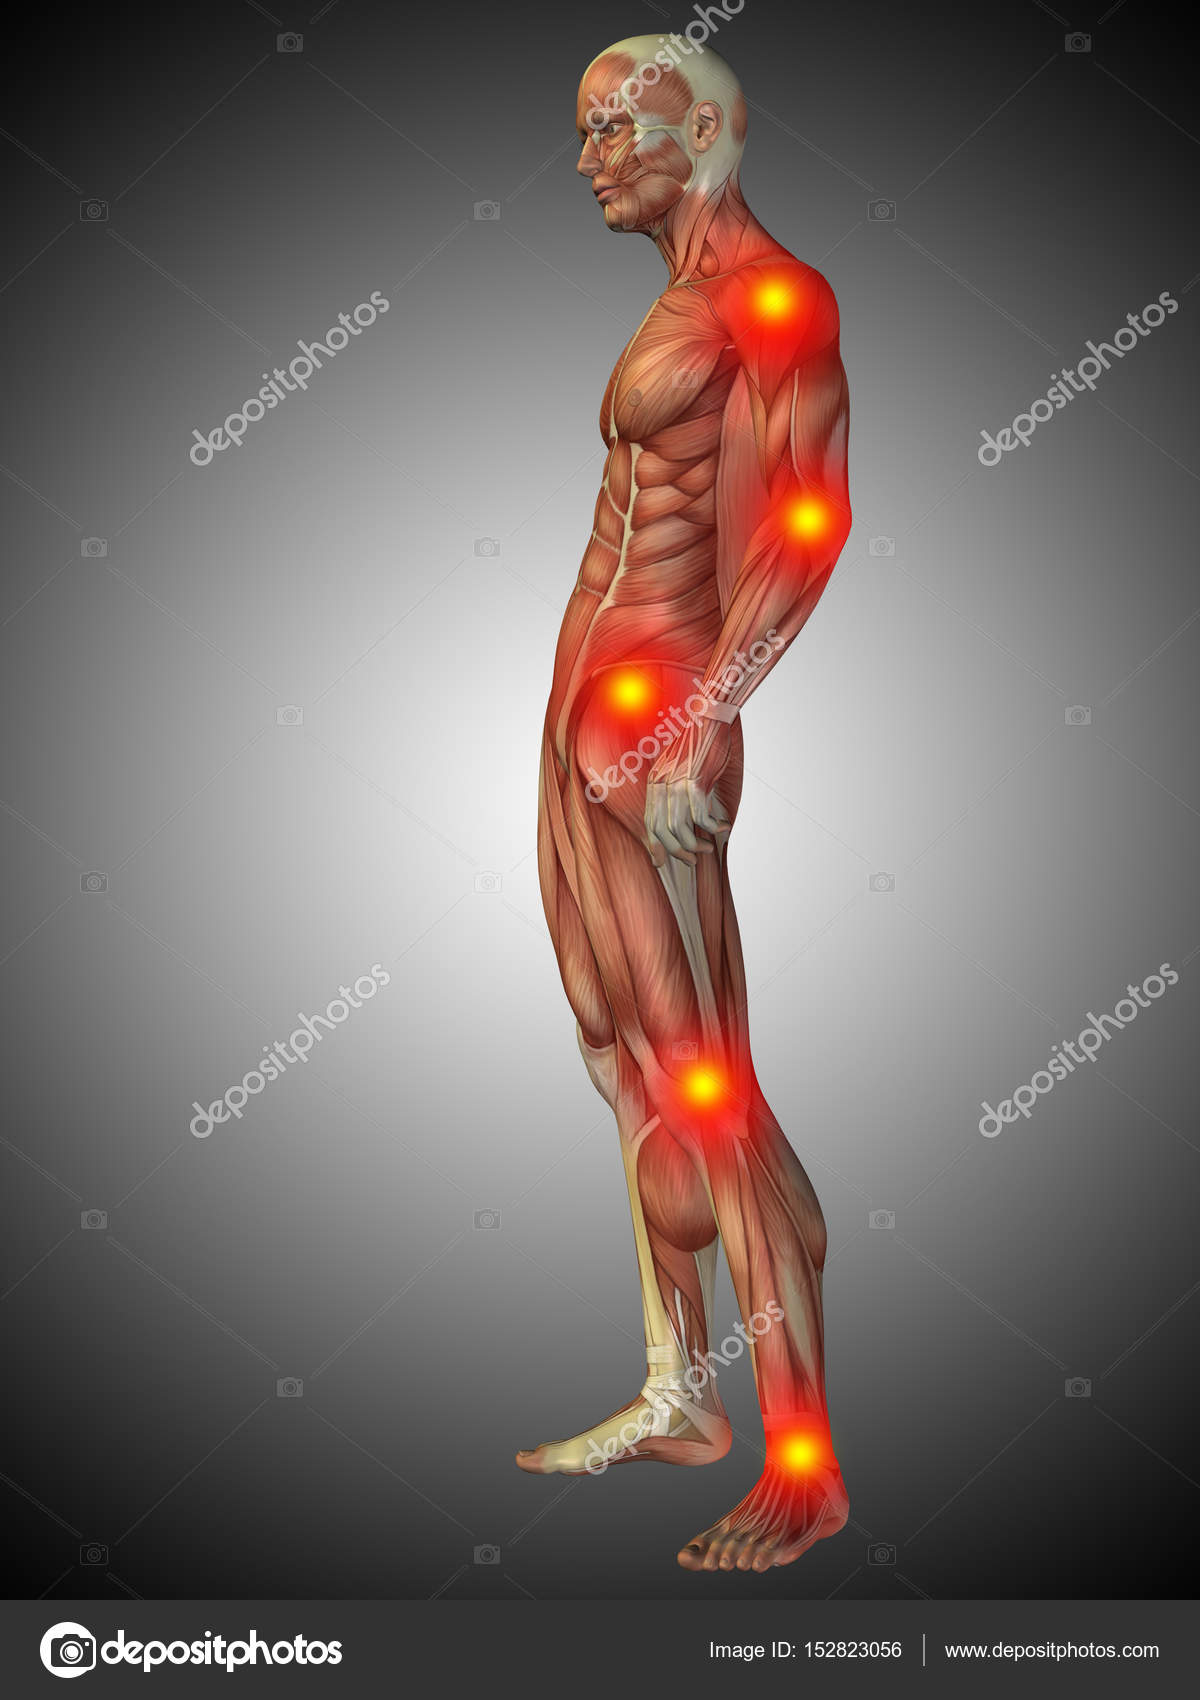 Human Body Anatomy With Pain Signs Stock Photo Design36 152823056